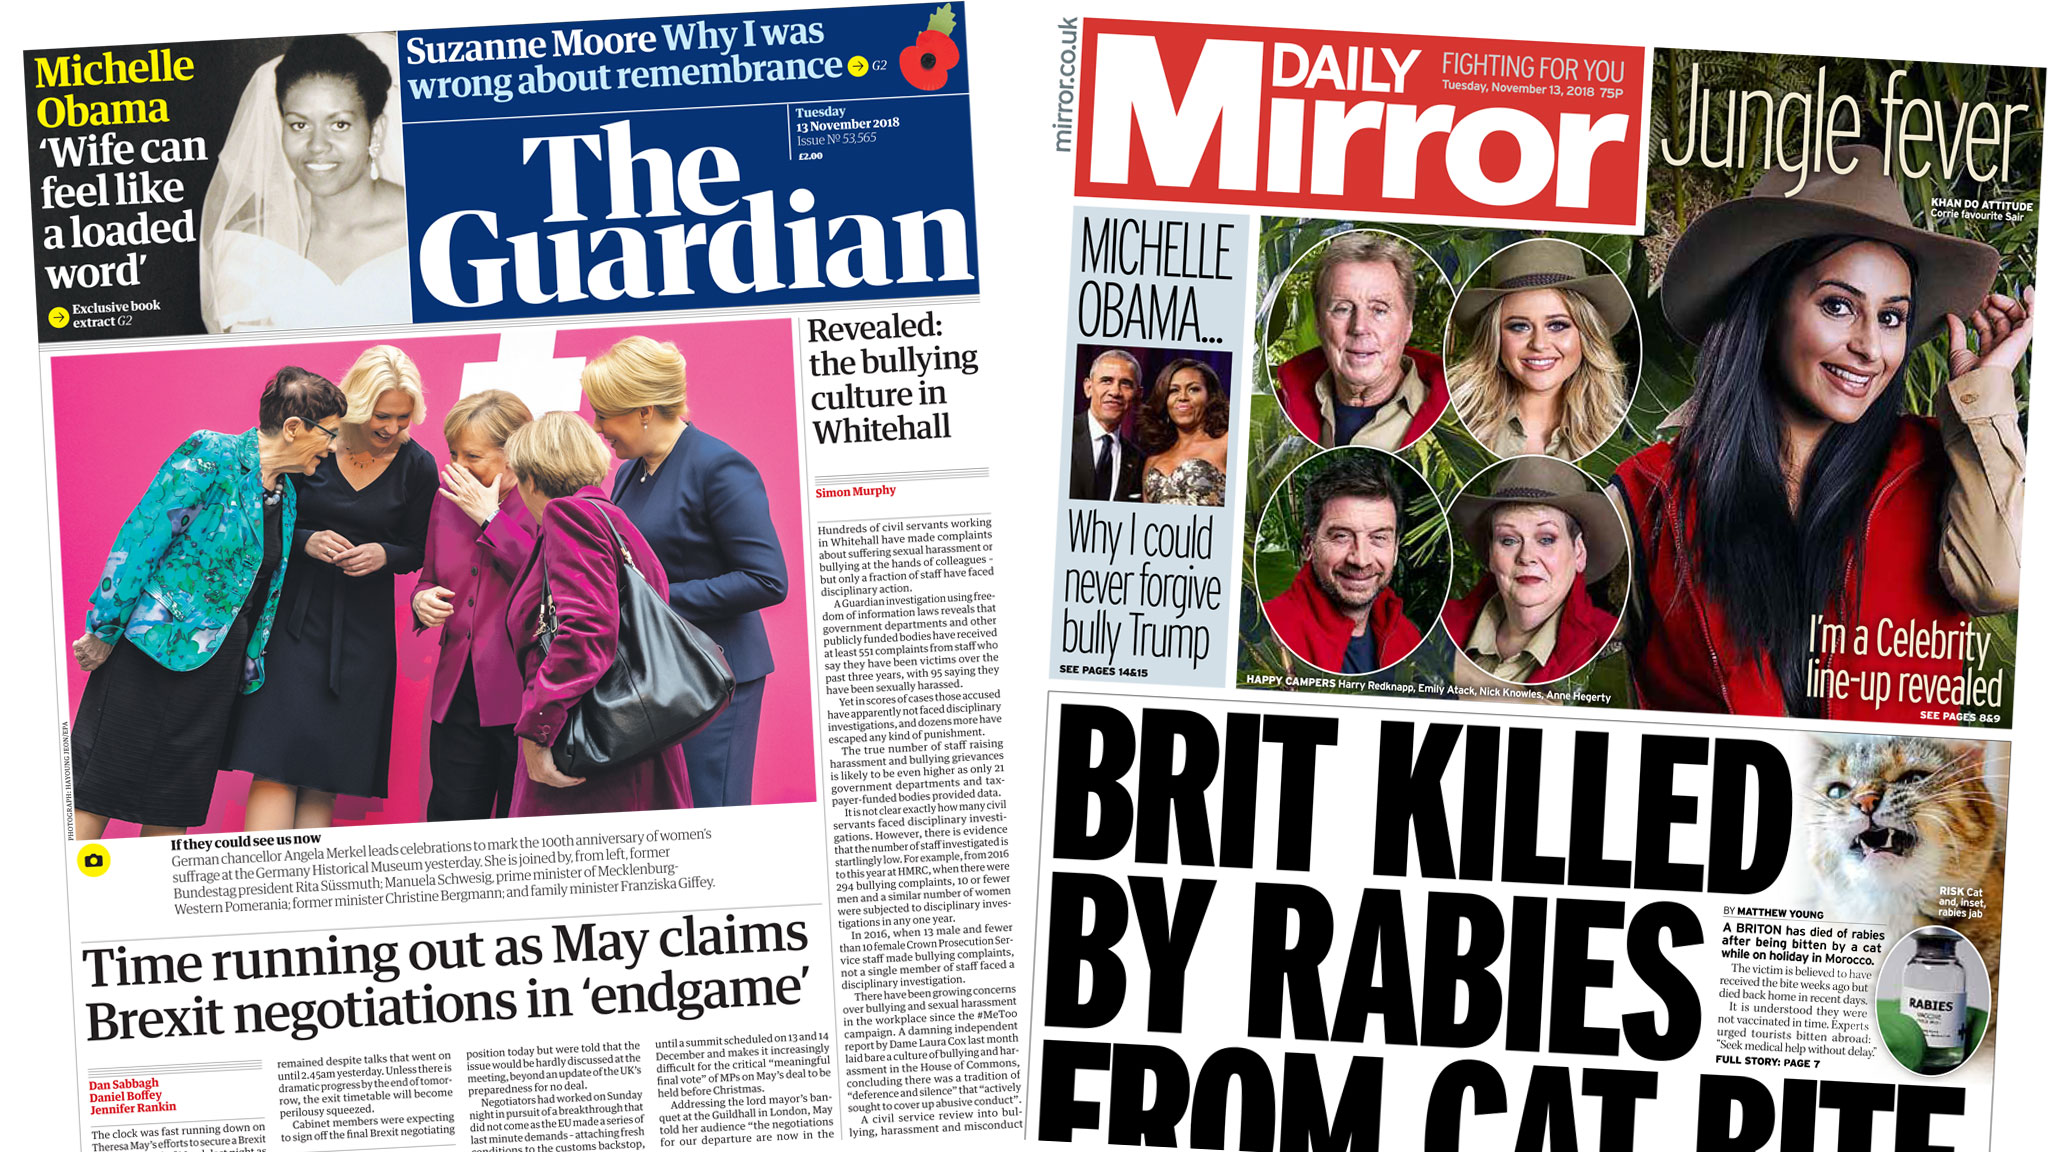 Newspaper headlines: 'Time running out' over Brexit